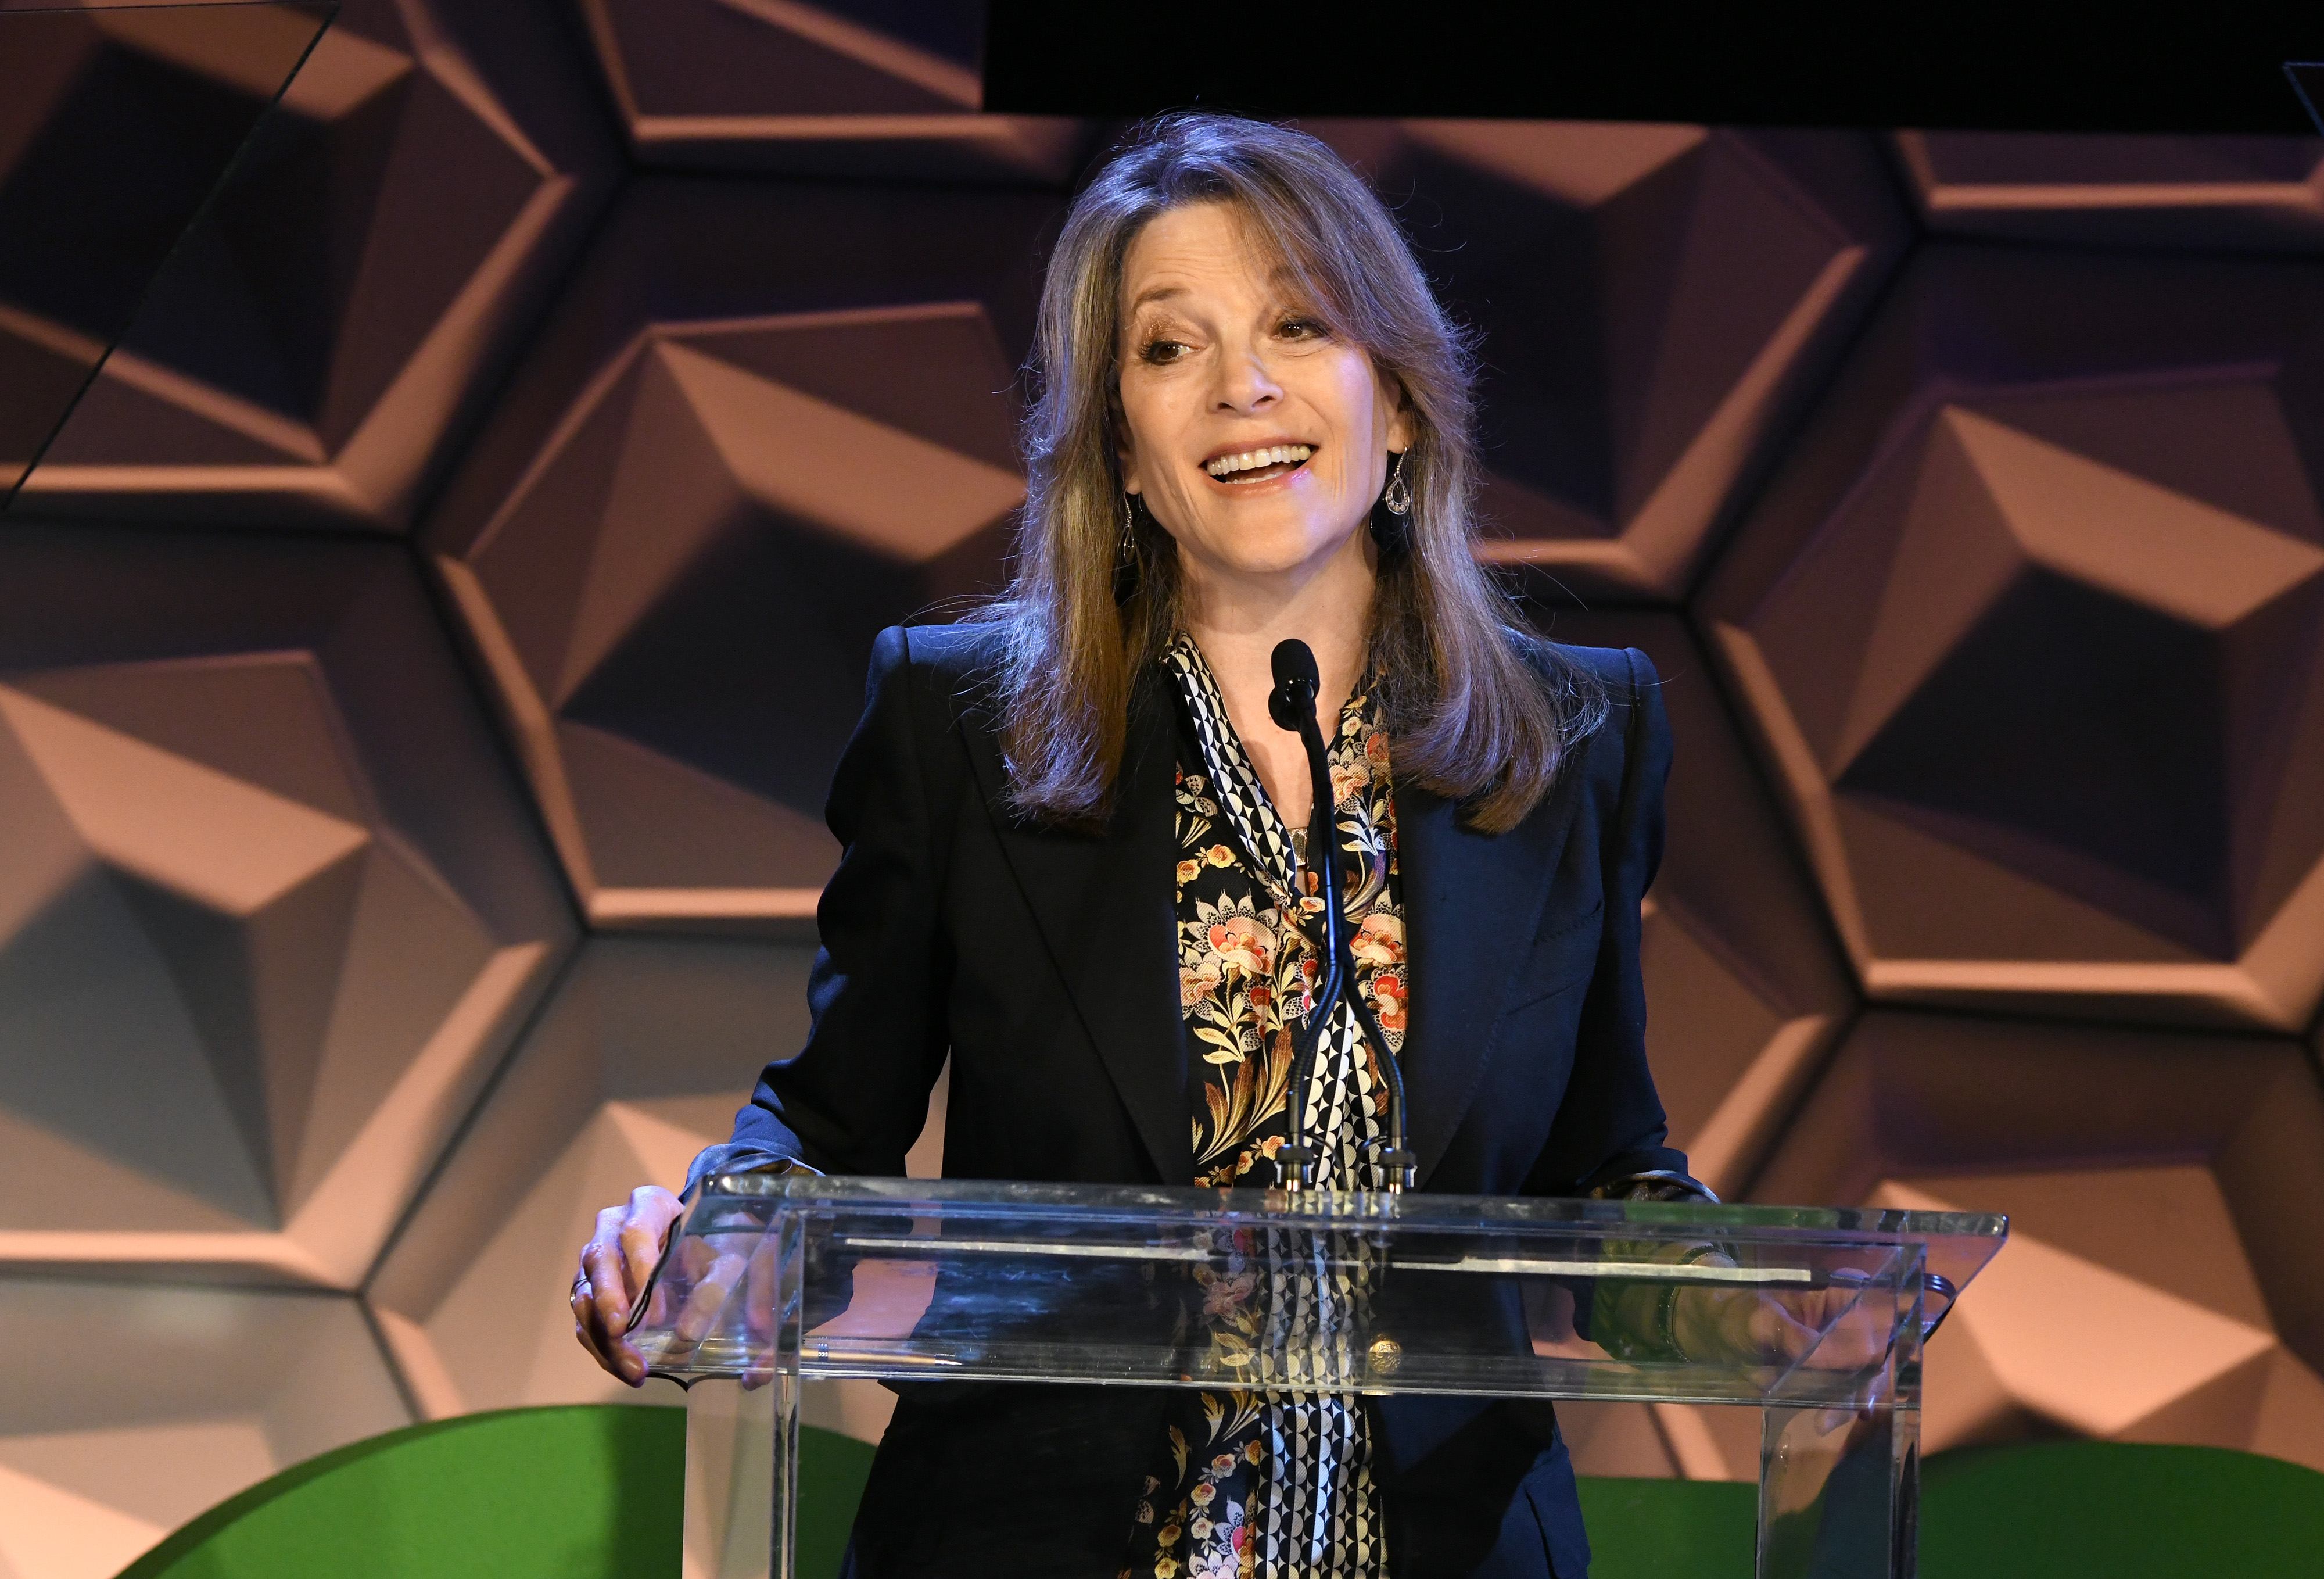 BEVERLY HILLS, CALIFORNIA - MAY 30: 2020 Presidential Candidate Marianne Williamson speaks onstage at the EMA IMPACT Summit - Day Two at Montage Beverly Hills on May 30, 2019 in Beverly Hills, California. (Photo by Michael Kovac/Getty Images for The Environmental Media Association)